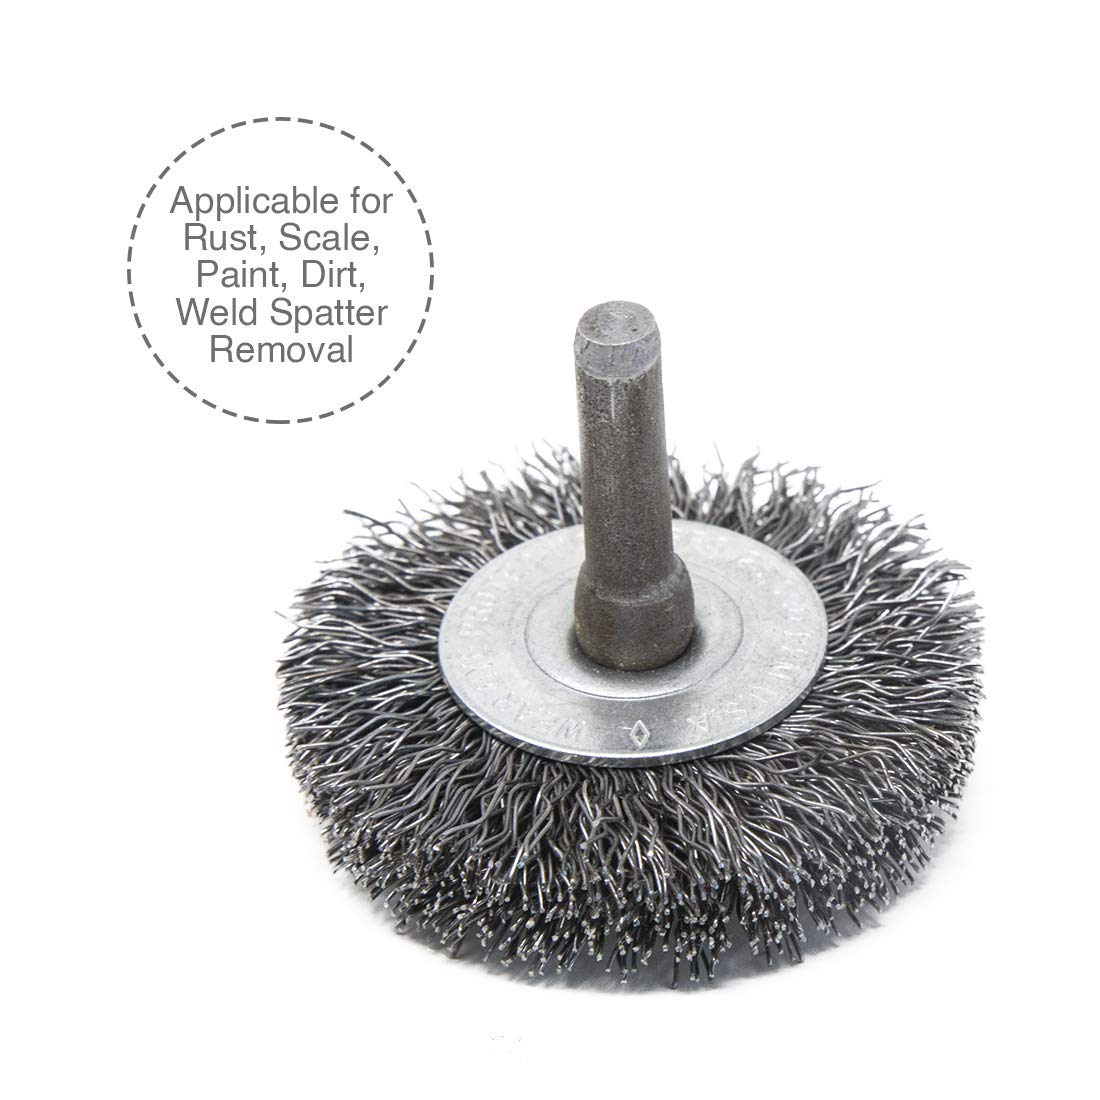 Light Duty 13000 RPM Maximum Rotational Speed Osborn International 16436SP Crimped Stainless Steel Wire Cup Brush with 1//4 Shank 1-3//4 Diameter